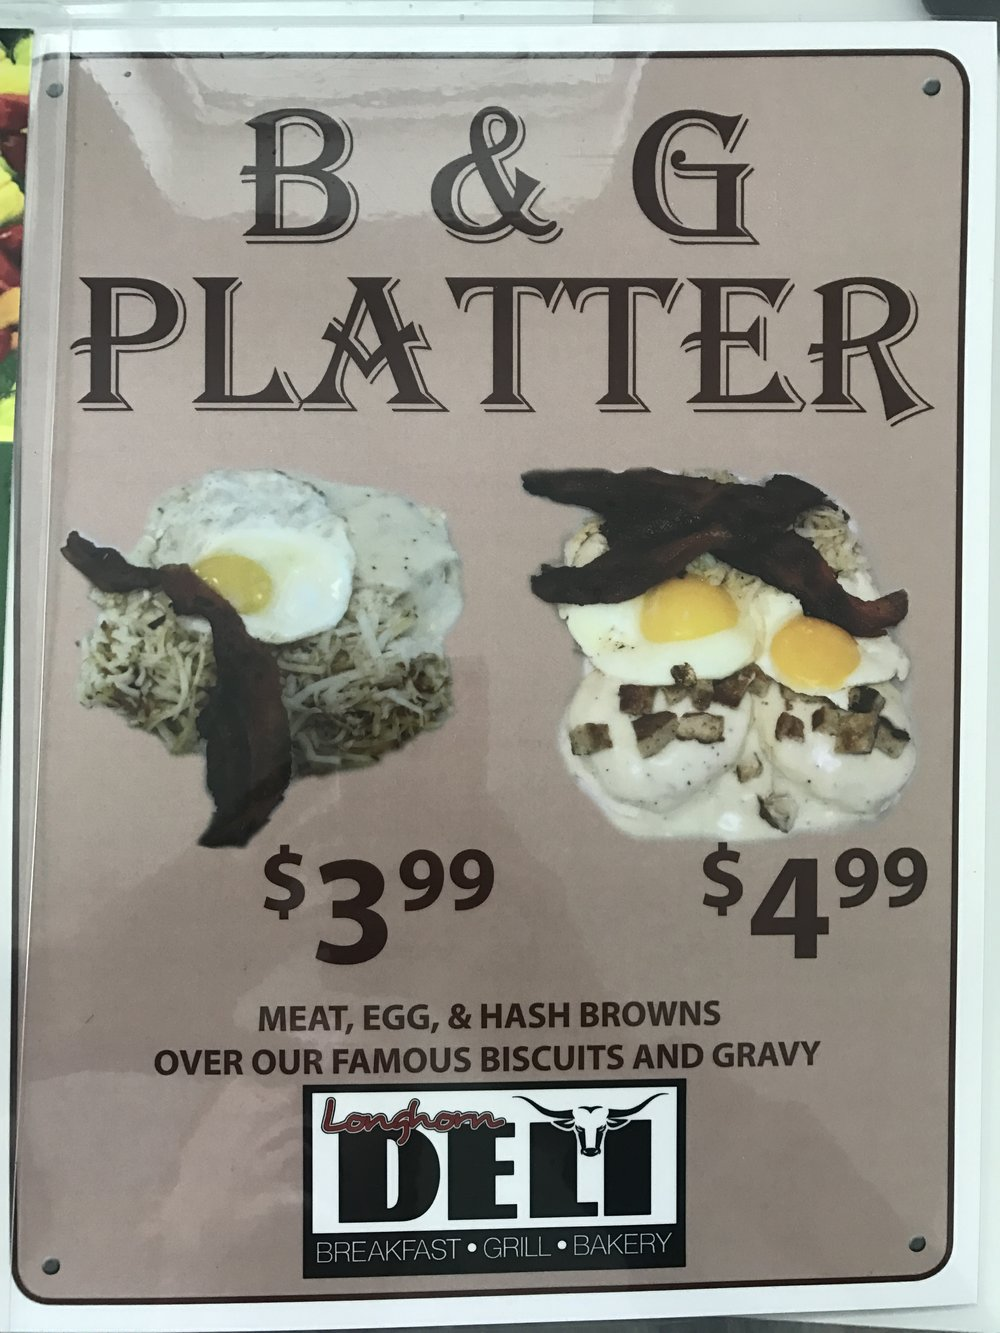 The B&G Platter was done no justice in this poster